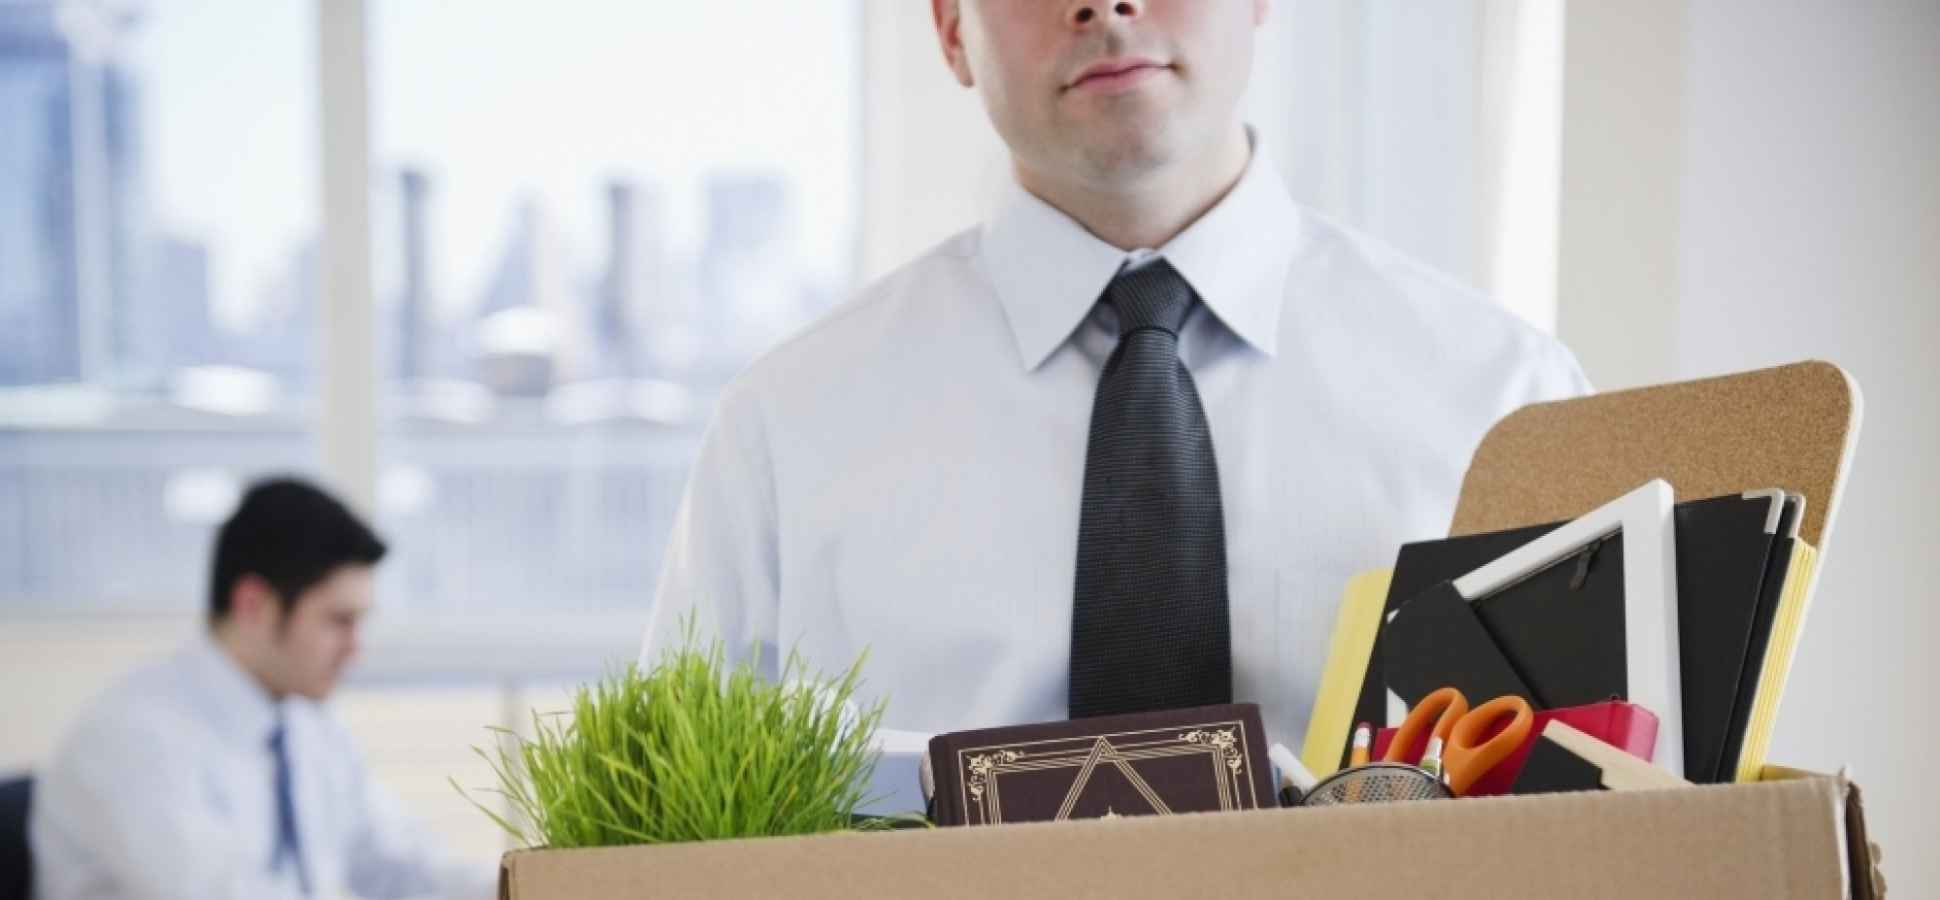 3 Reasons You Should Fire A High-Performing Employee